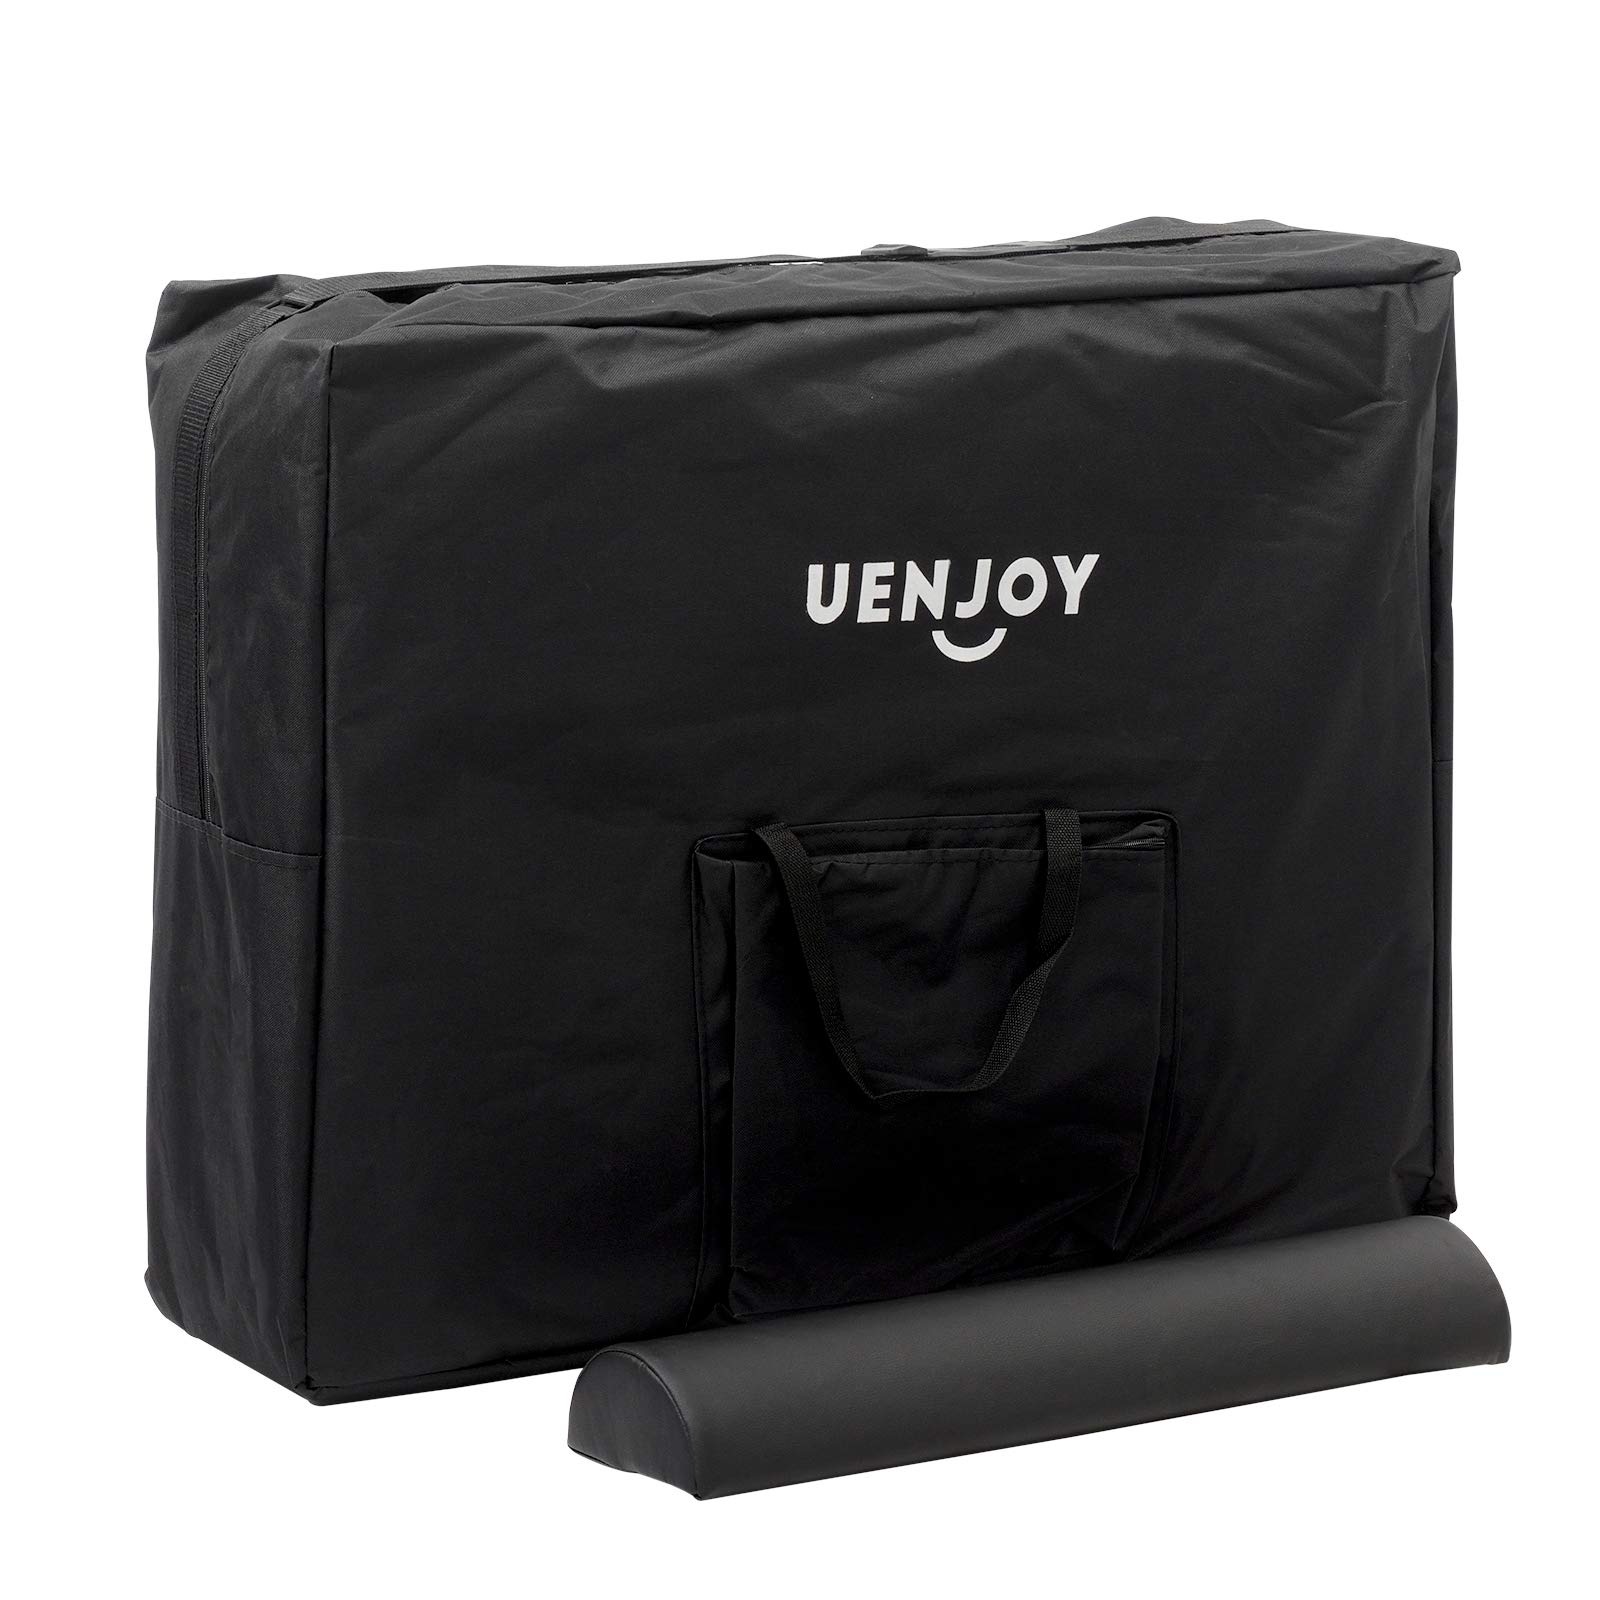 Uenjoy Massage Table 84'' Professional Folding Massage Bed Deluxe Model with Extra Width, Ultra-thick Sponge, PU Leather Surface & Additional Accessories, 2 Fold, Black by Uenjoy (Image #10)